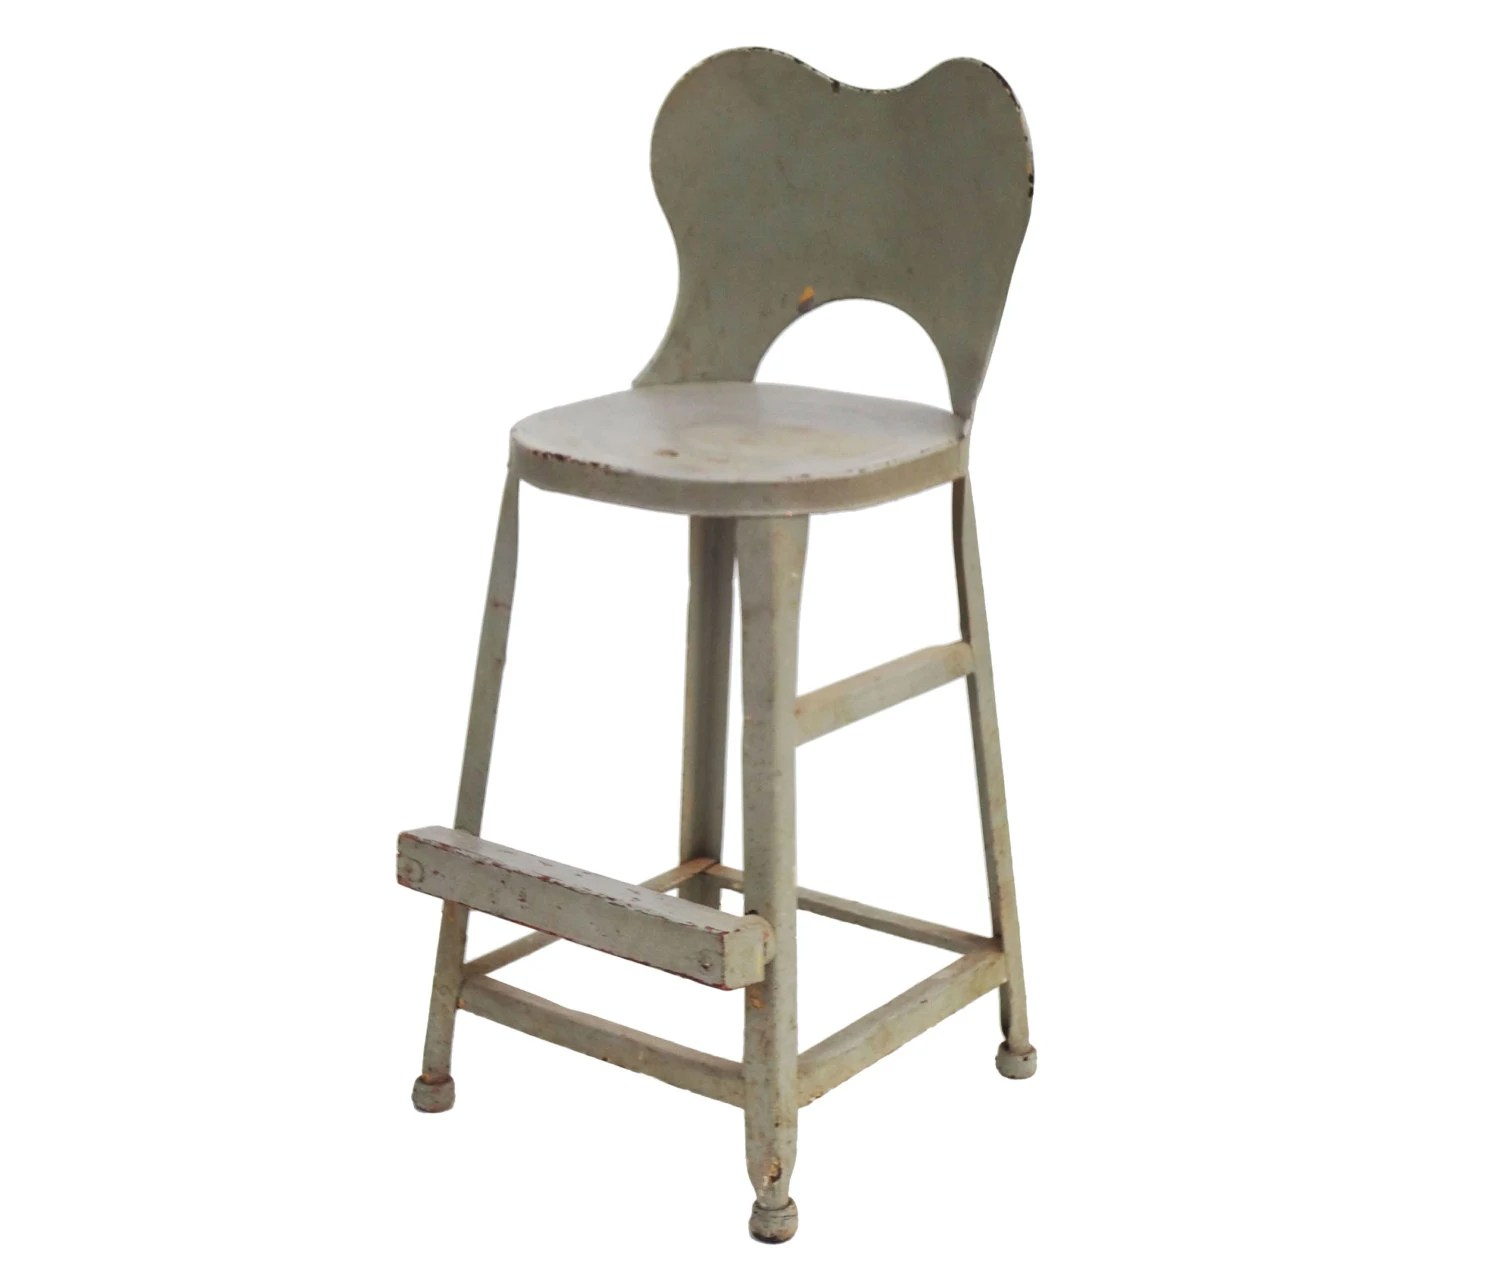 Vintage Delightfully Shabby Pale Blue Child's Booster Seat